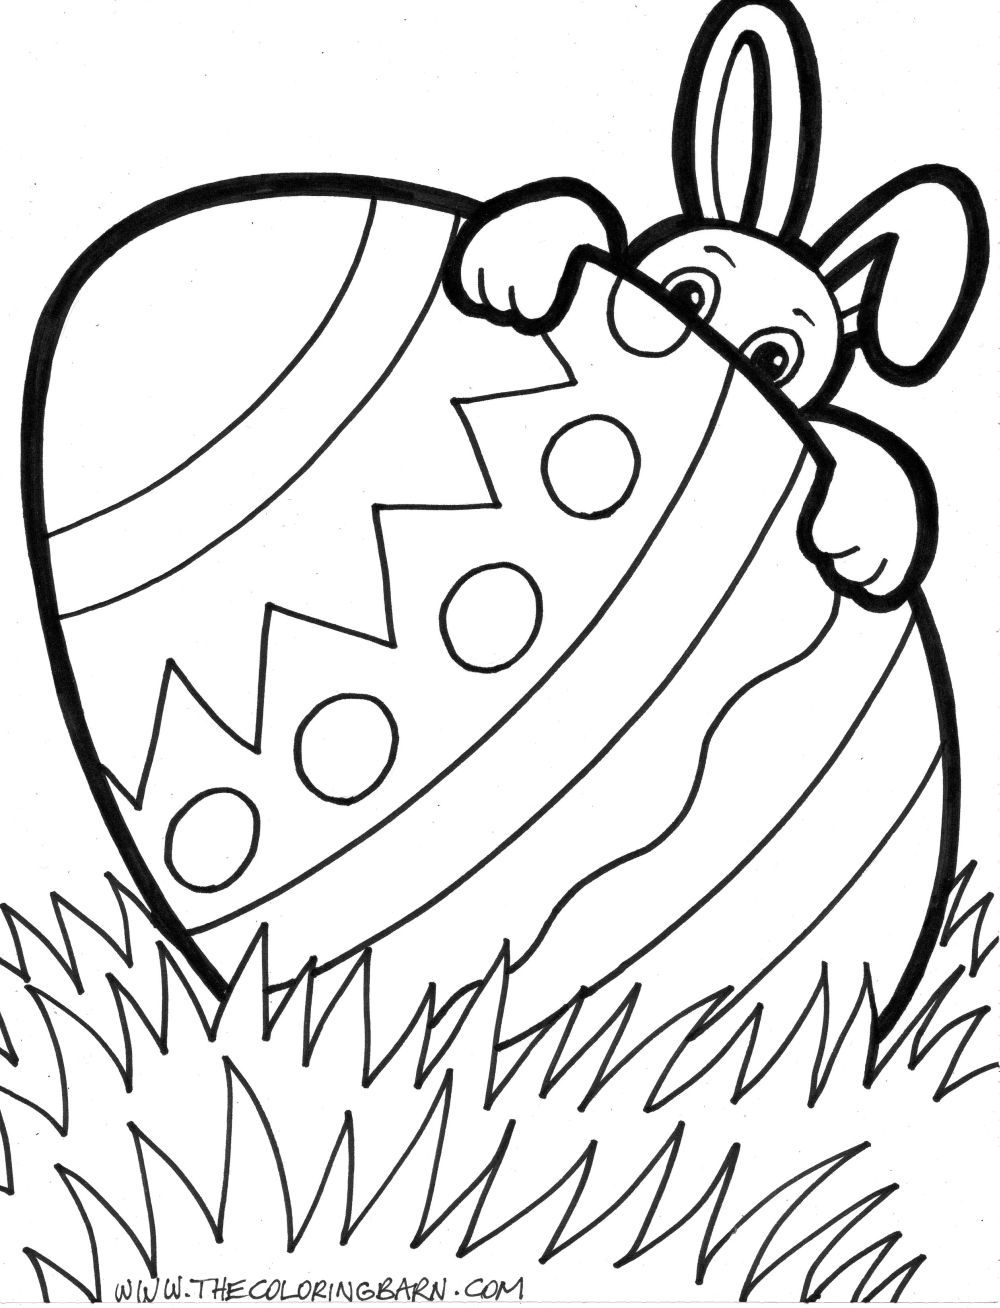 Free Printable Easter Egg Coloring Pages Online Sheets For Kids Get The Latest